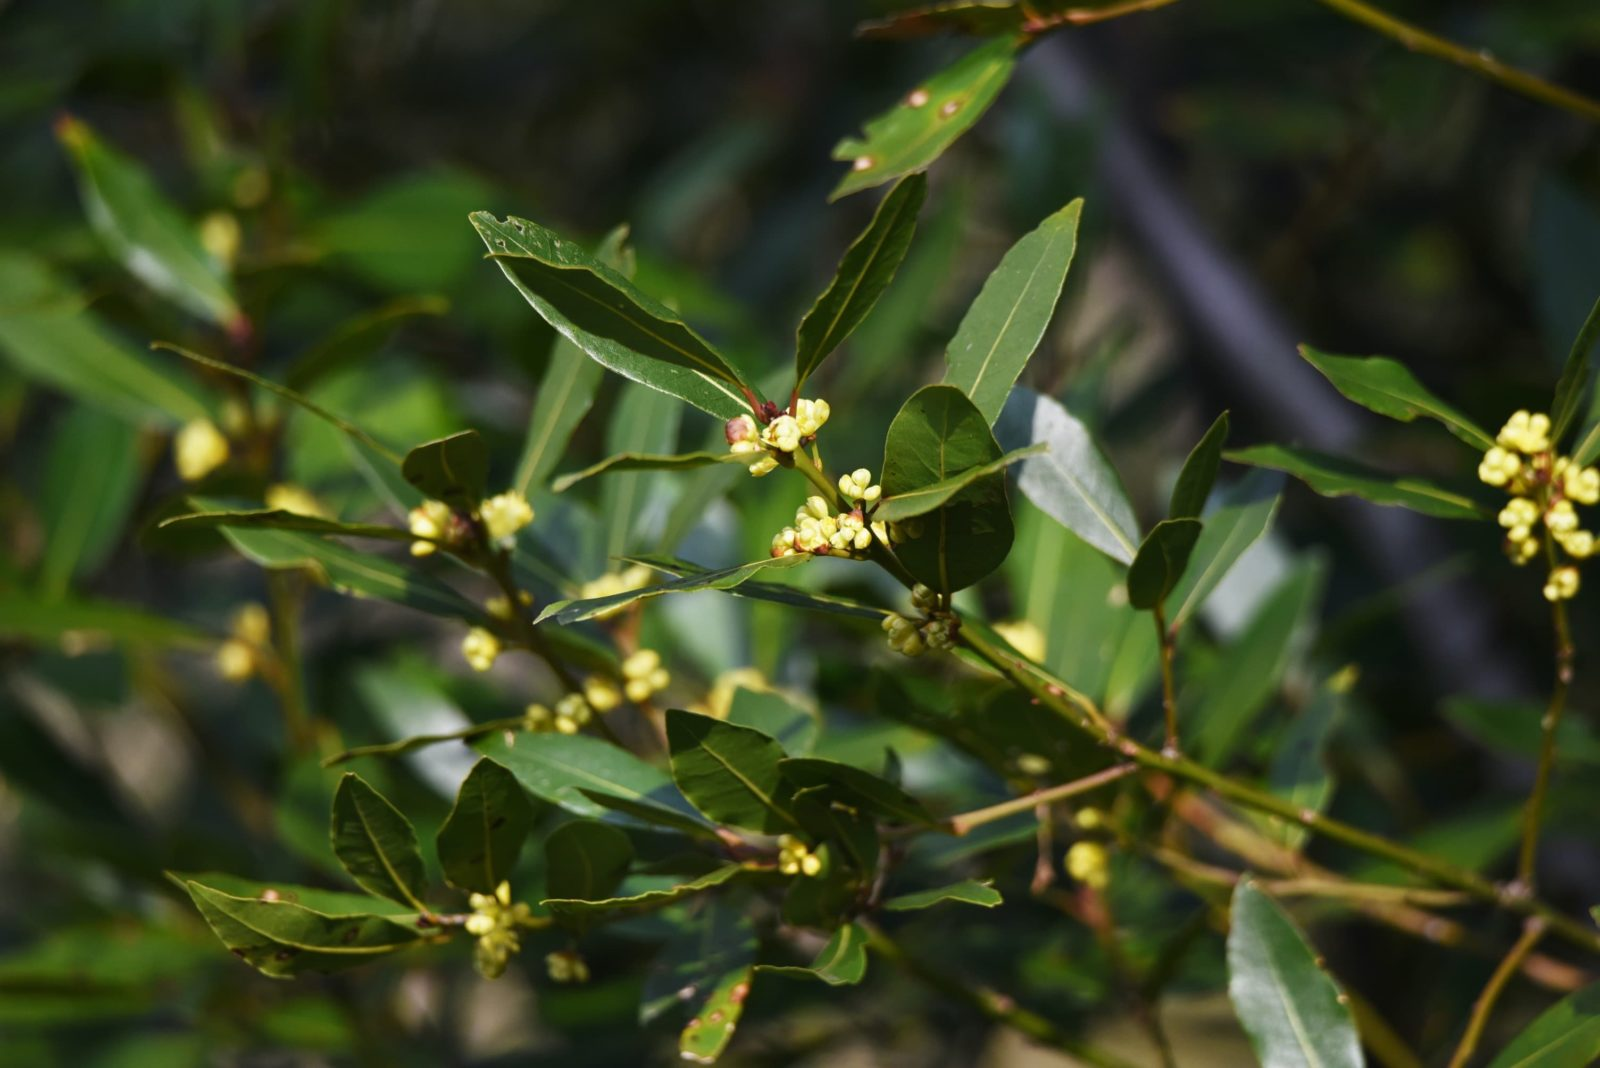 bay laurel leaves and yellow flowers